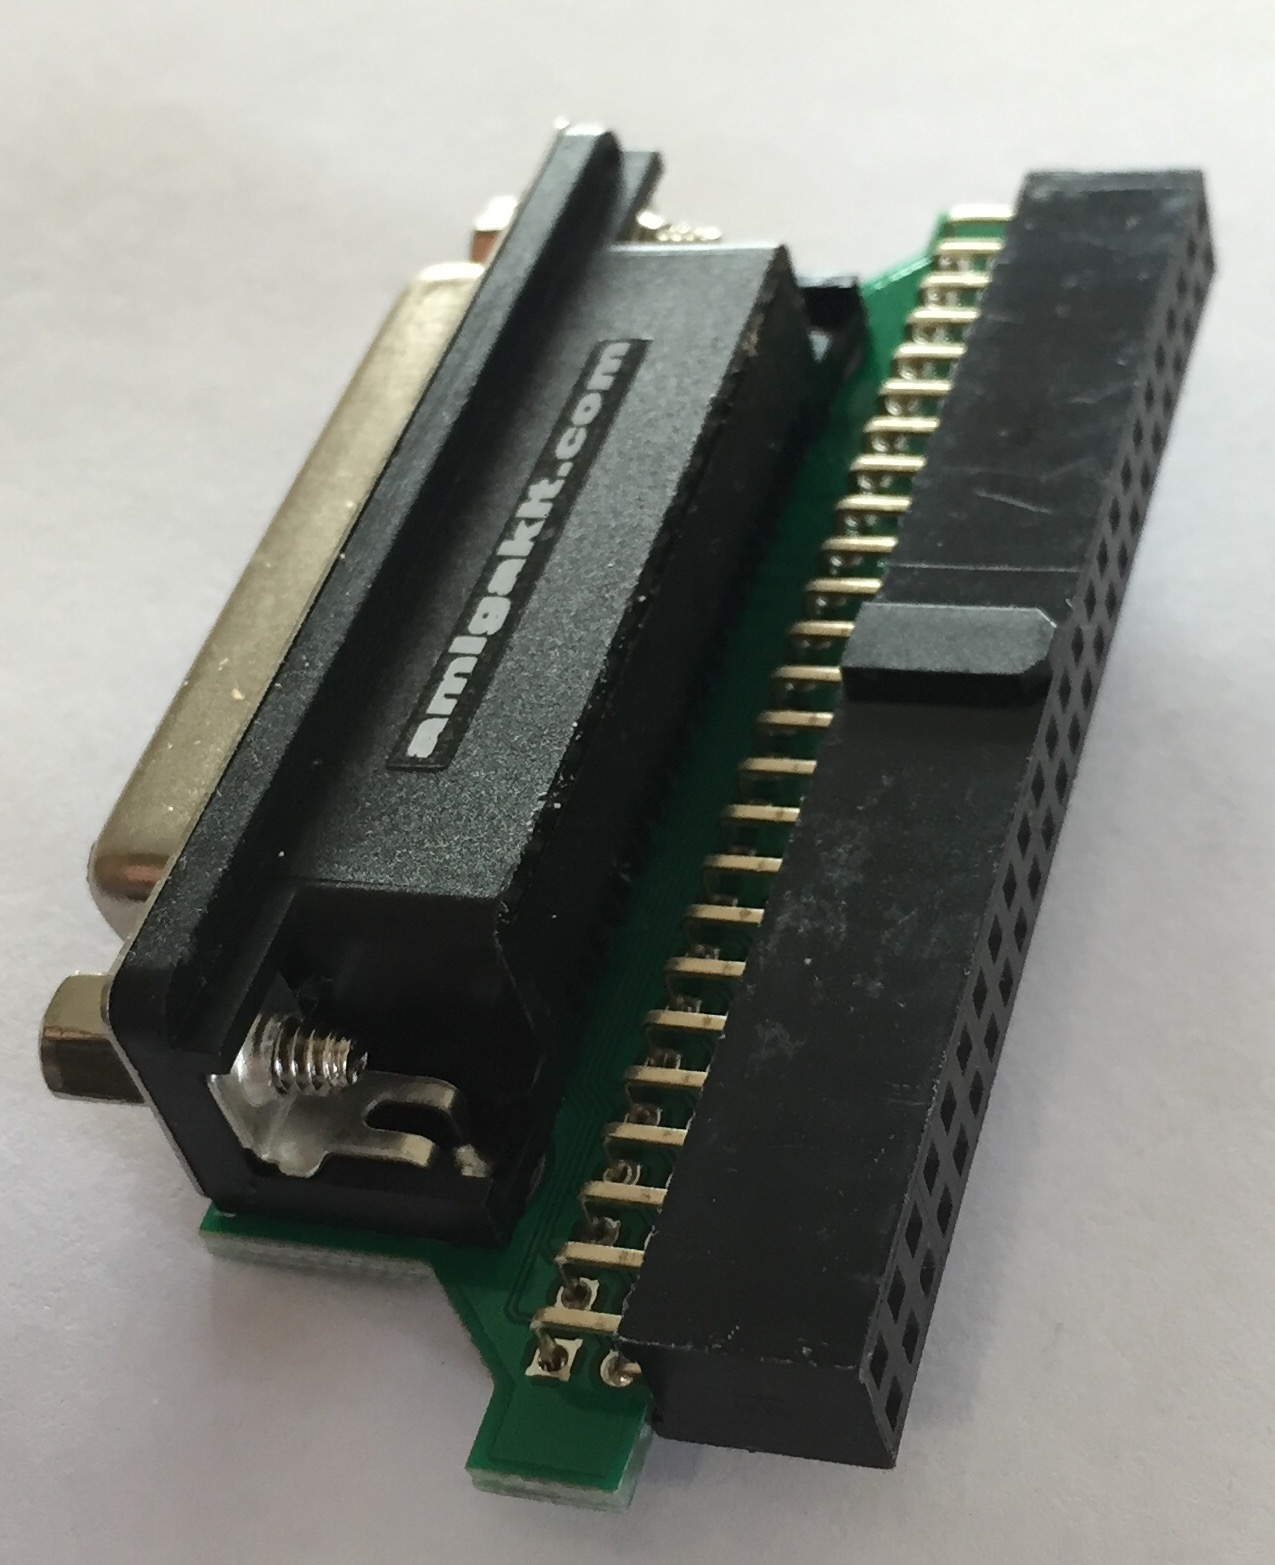 25-pin Female DSub DB25 to 50-way IDC Female SCSI Adapter